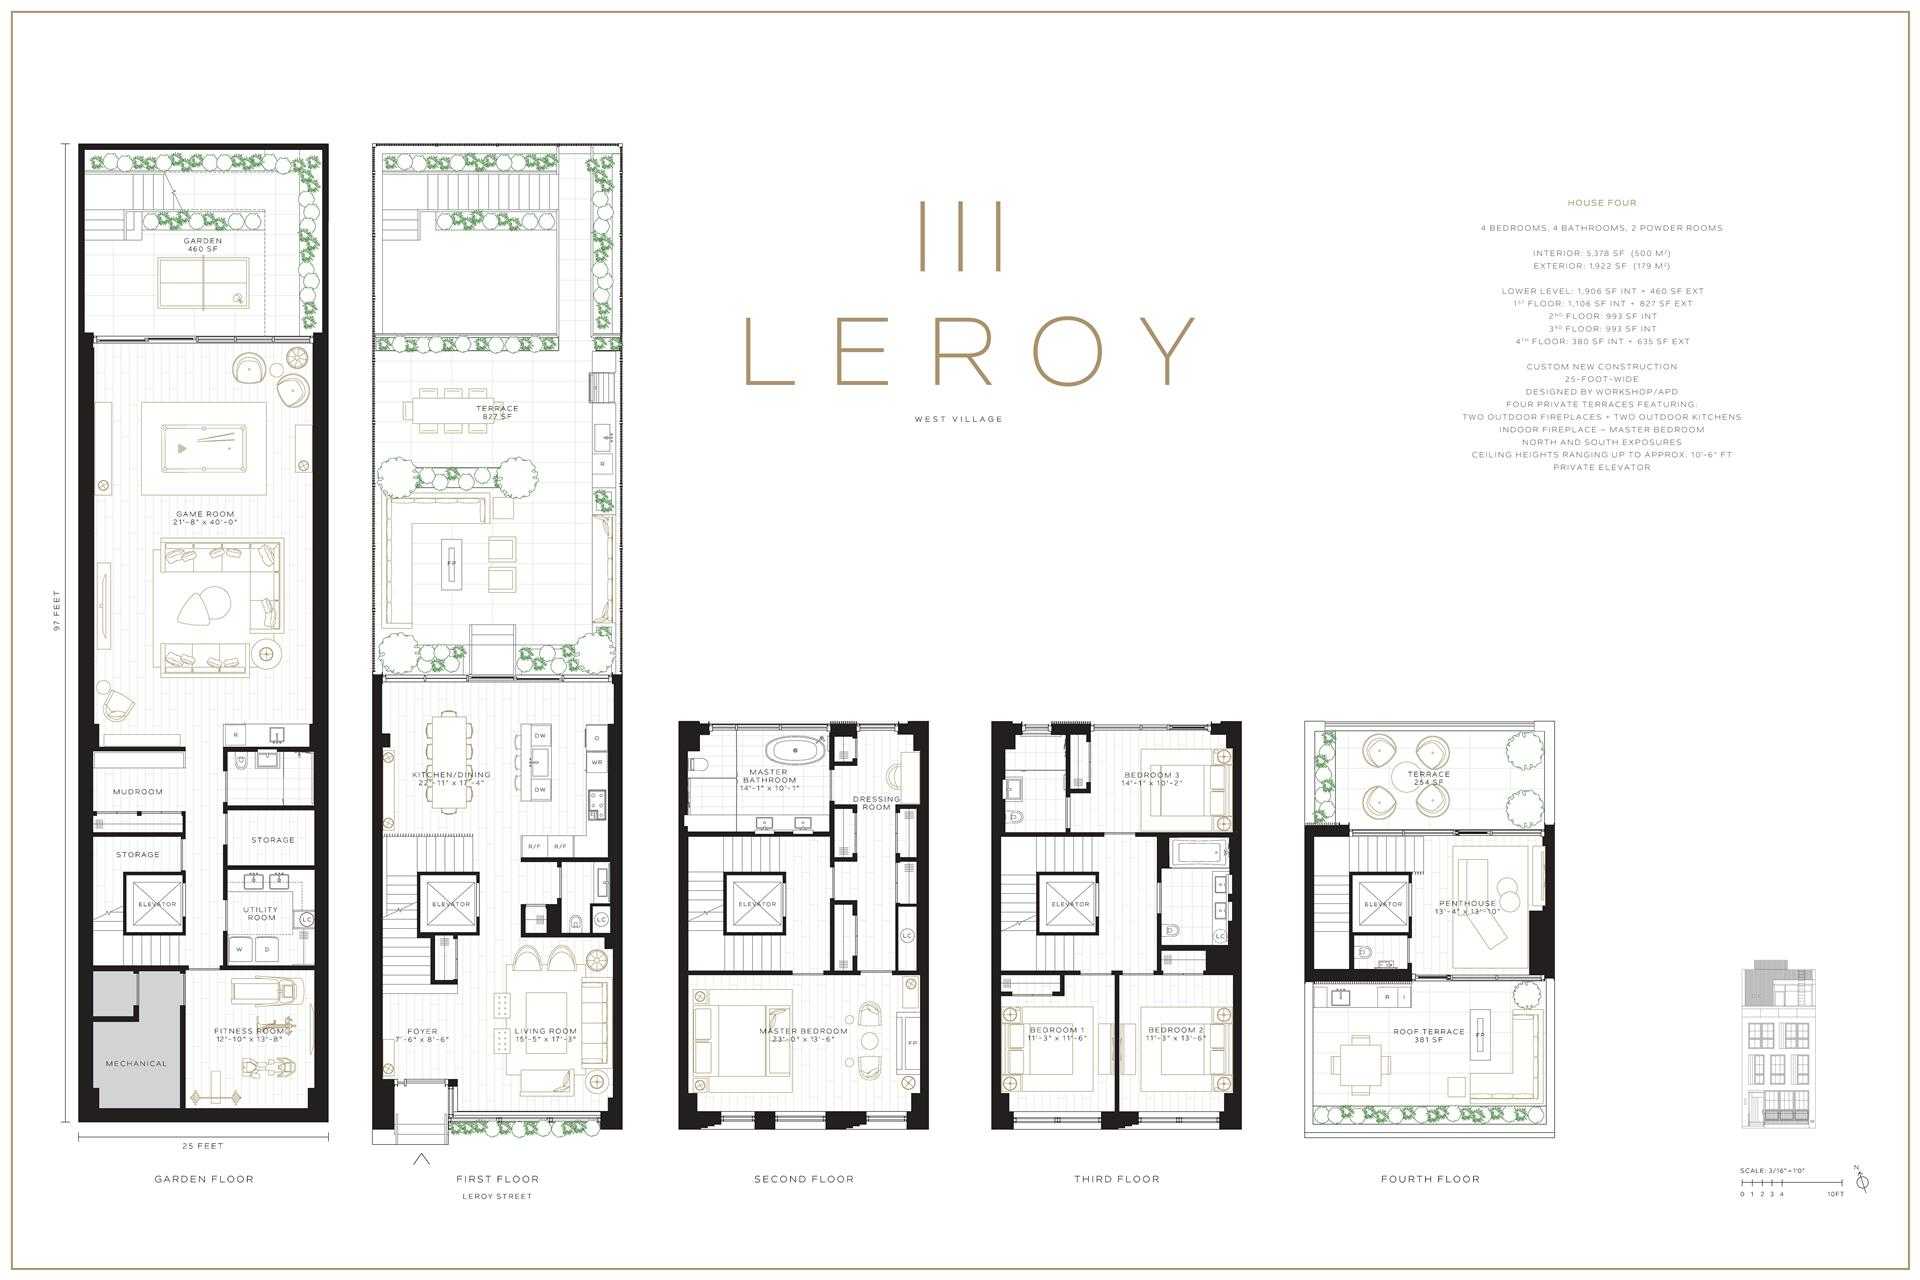 Floor plan of 115 Leroy St - West Village - Meatpacking District, New York